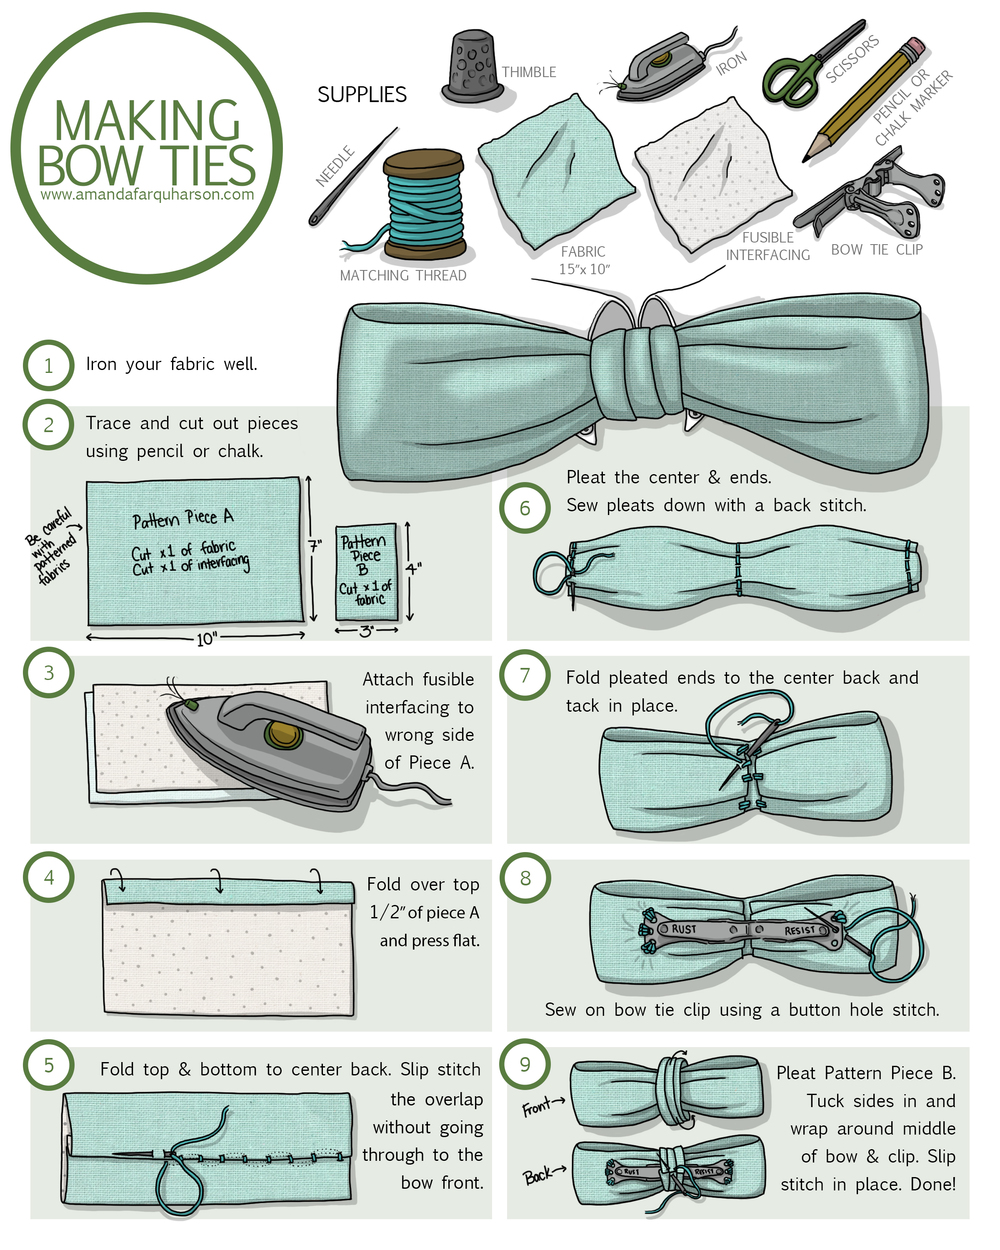 How To Tie a Bow Tie The essence of the bow tie guy lies in a certain level of independence – maybe even quirkiness and part of his mystique lies in his ability to tie his own bow. Unfortunately, it's not an entirely intuitive task, so if you're still working on it, you may find this page is helpful.